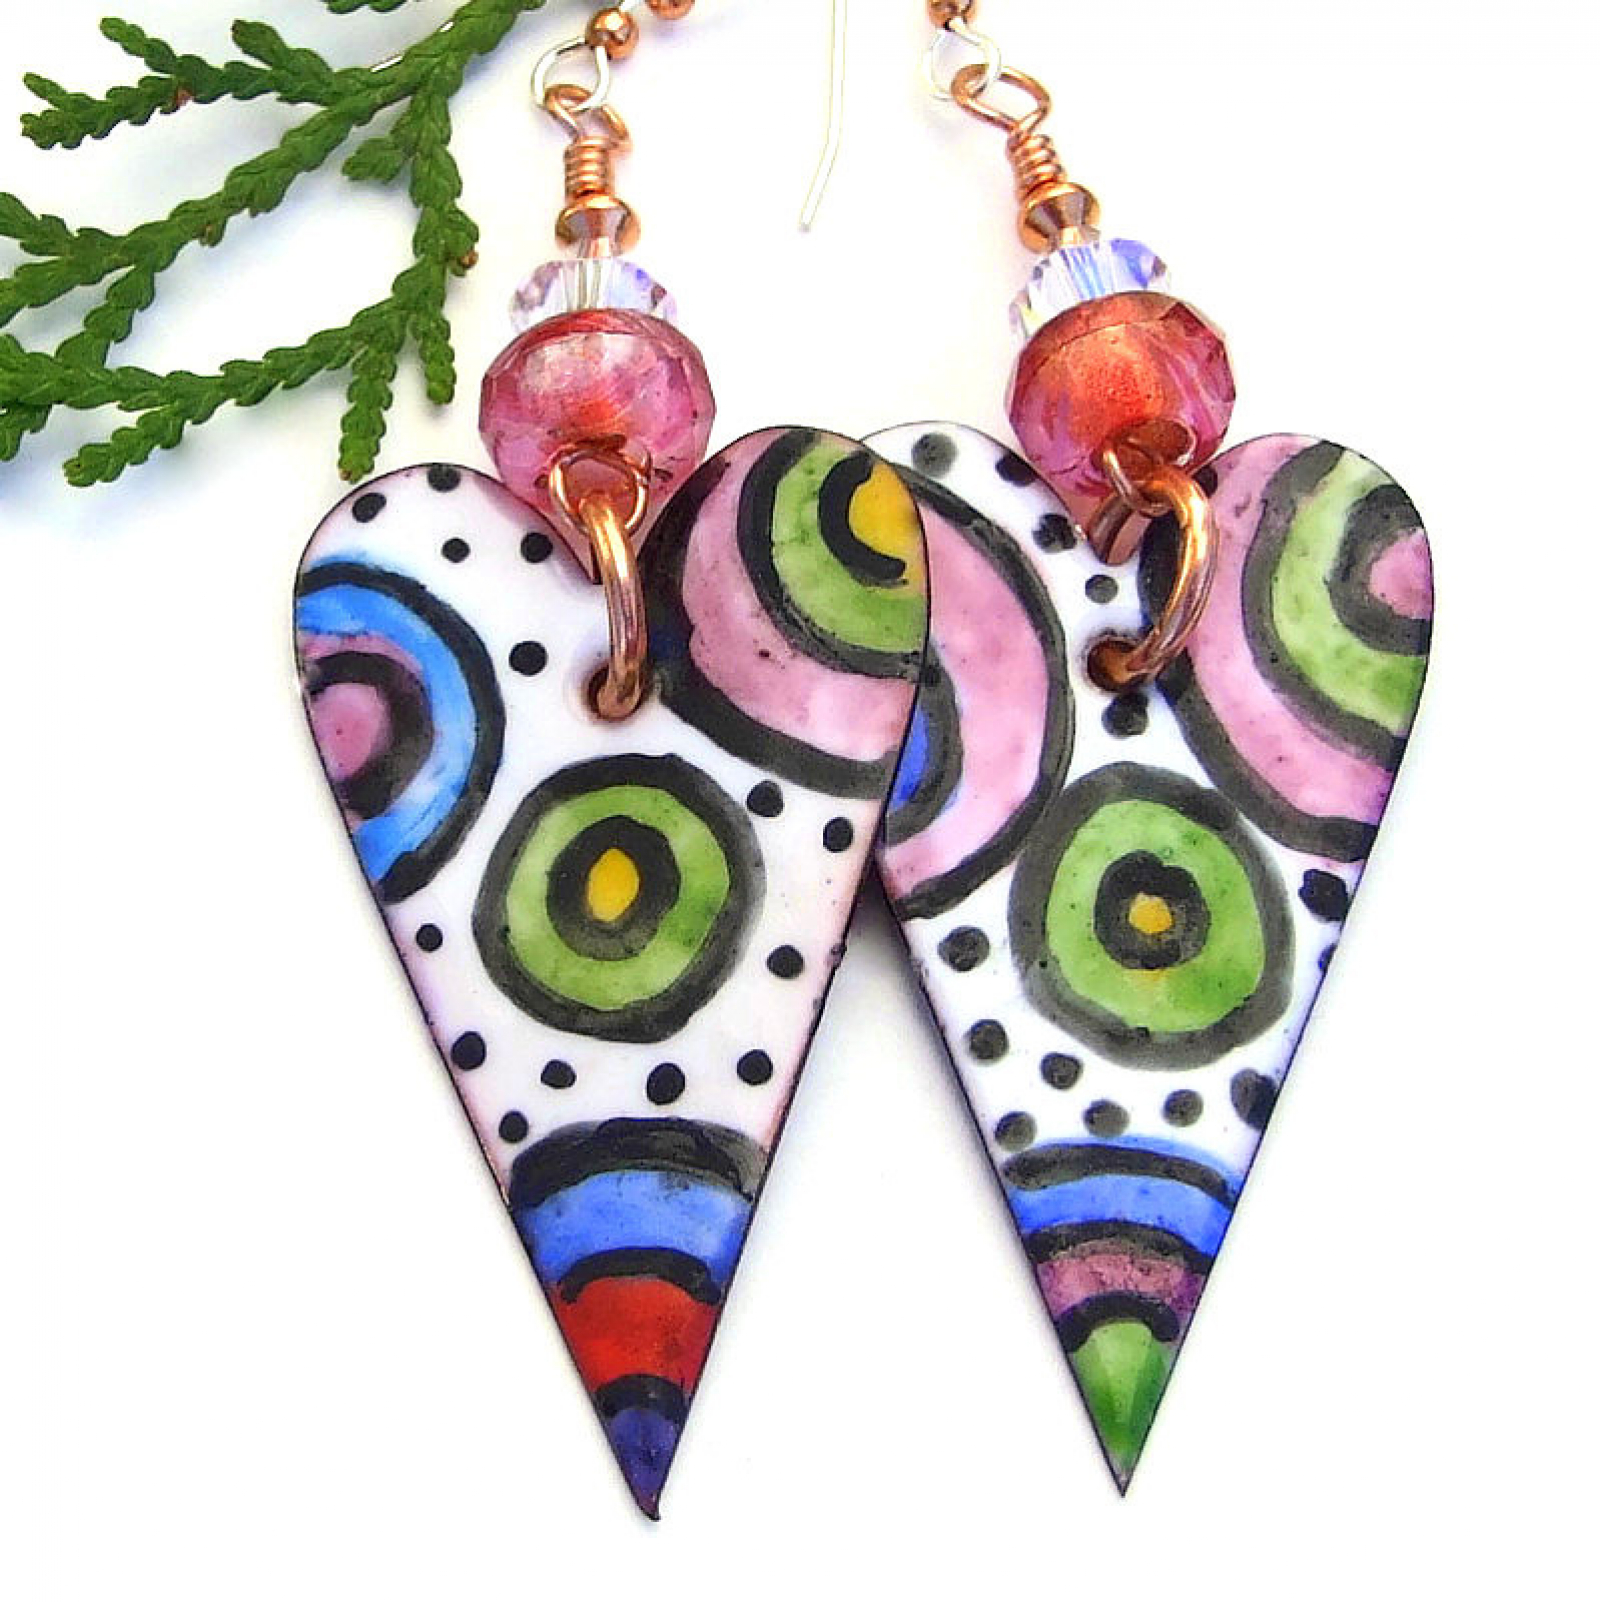 Jewelry Beads Enameled Beads Sterling Silver Reflections Enamel Rainbow Bead